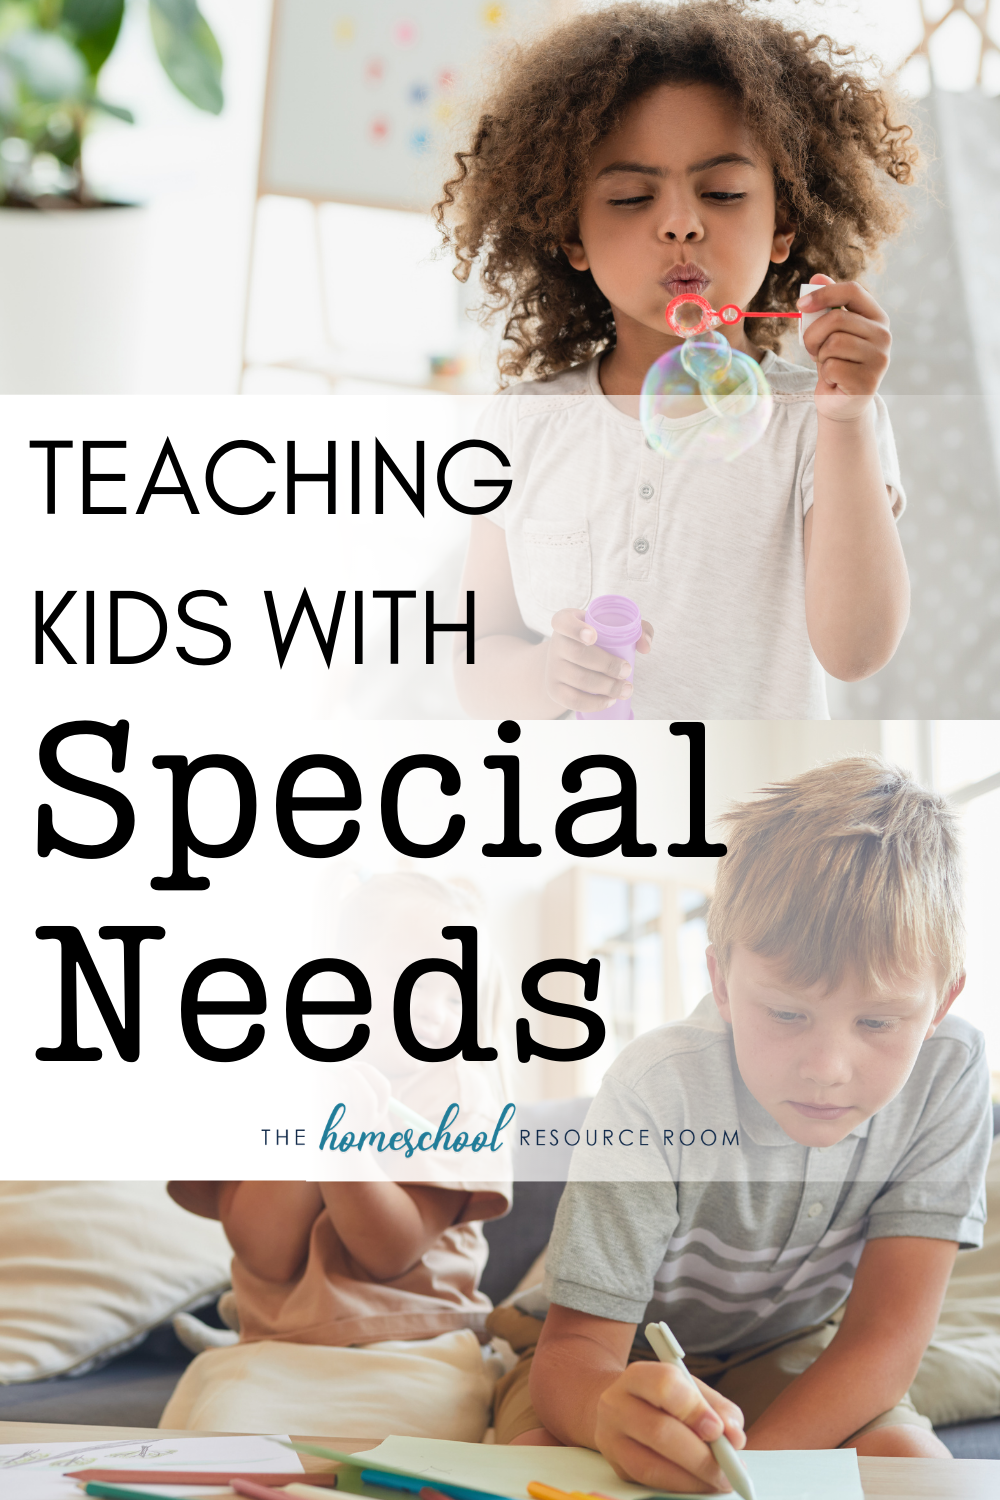 Working with special needs children: whether you're teaching or homeschooling - or wondering if homeschooling your special needs child is even possible. Tips for making the most of learning time.